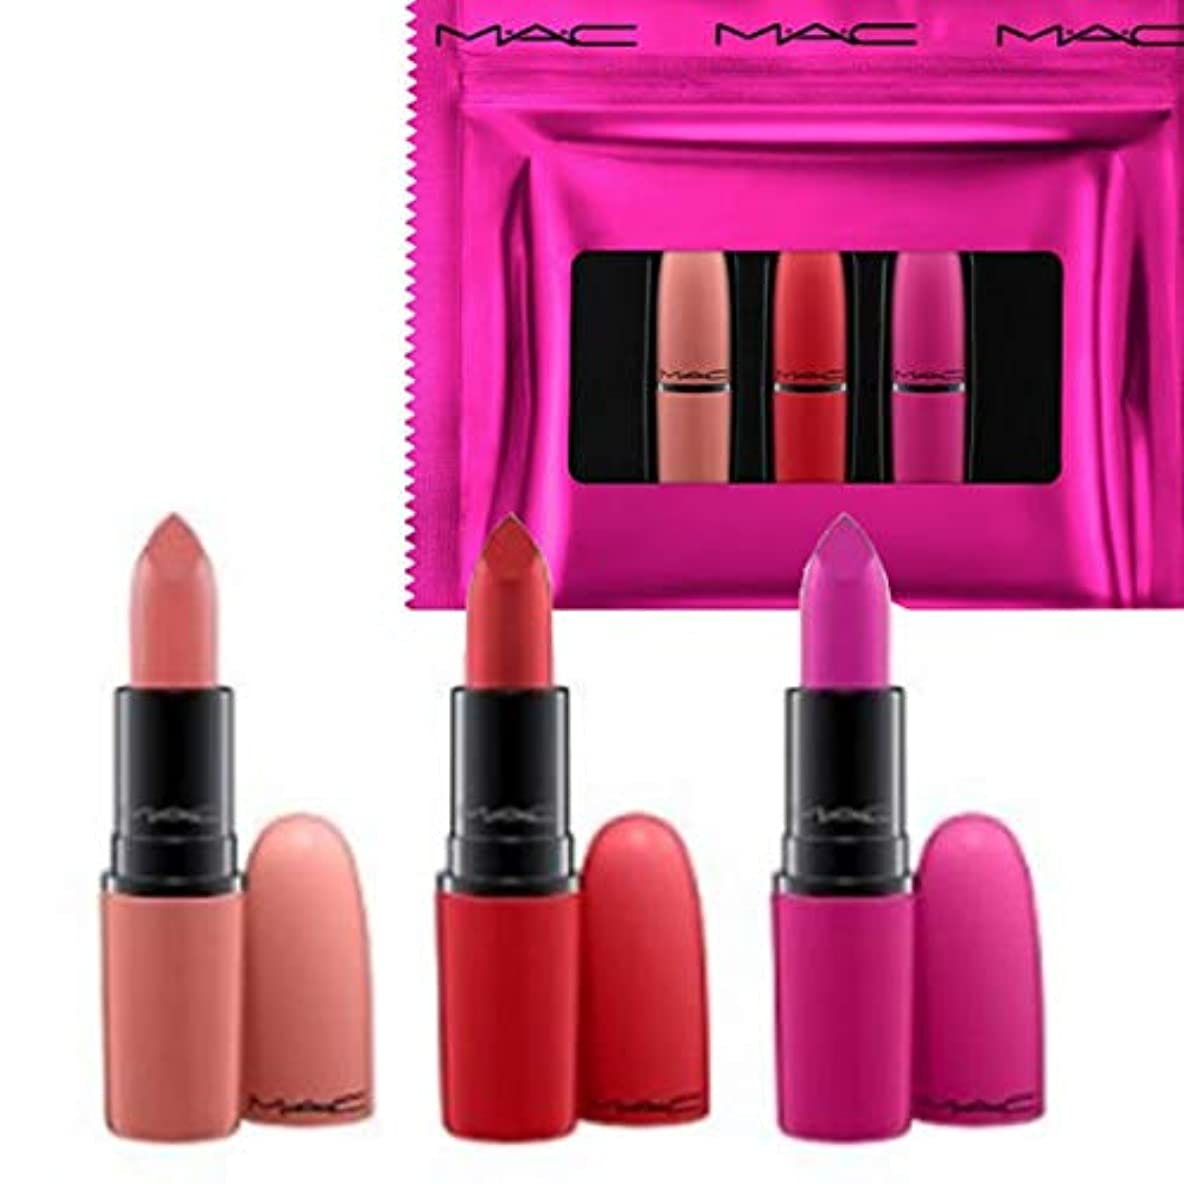 ピジンモスクエールM.A.C ?マック, Limited Edition 限定版, 3-Pc. Shiny Pretty Things Lip Set - Russian Red/Kinda Sexy/Flat Out Fabulous...